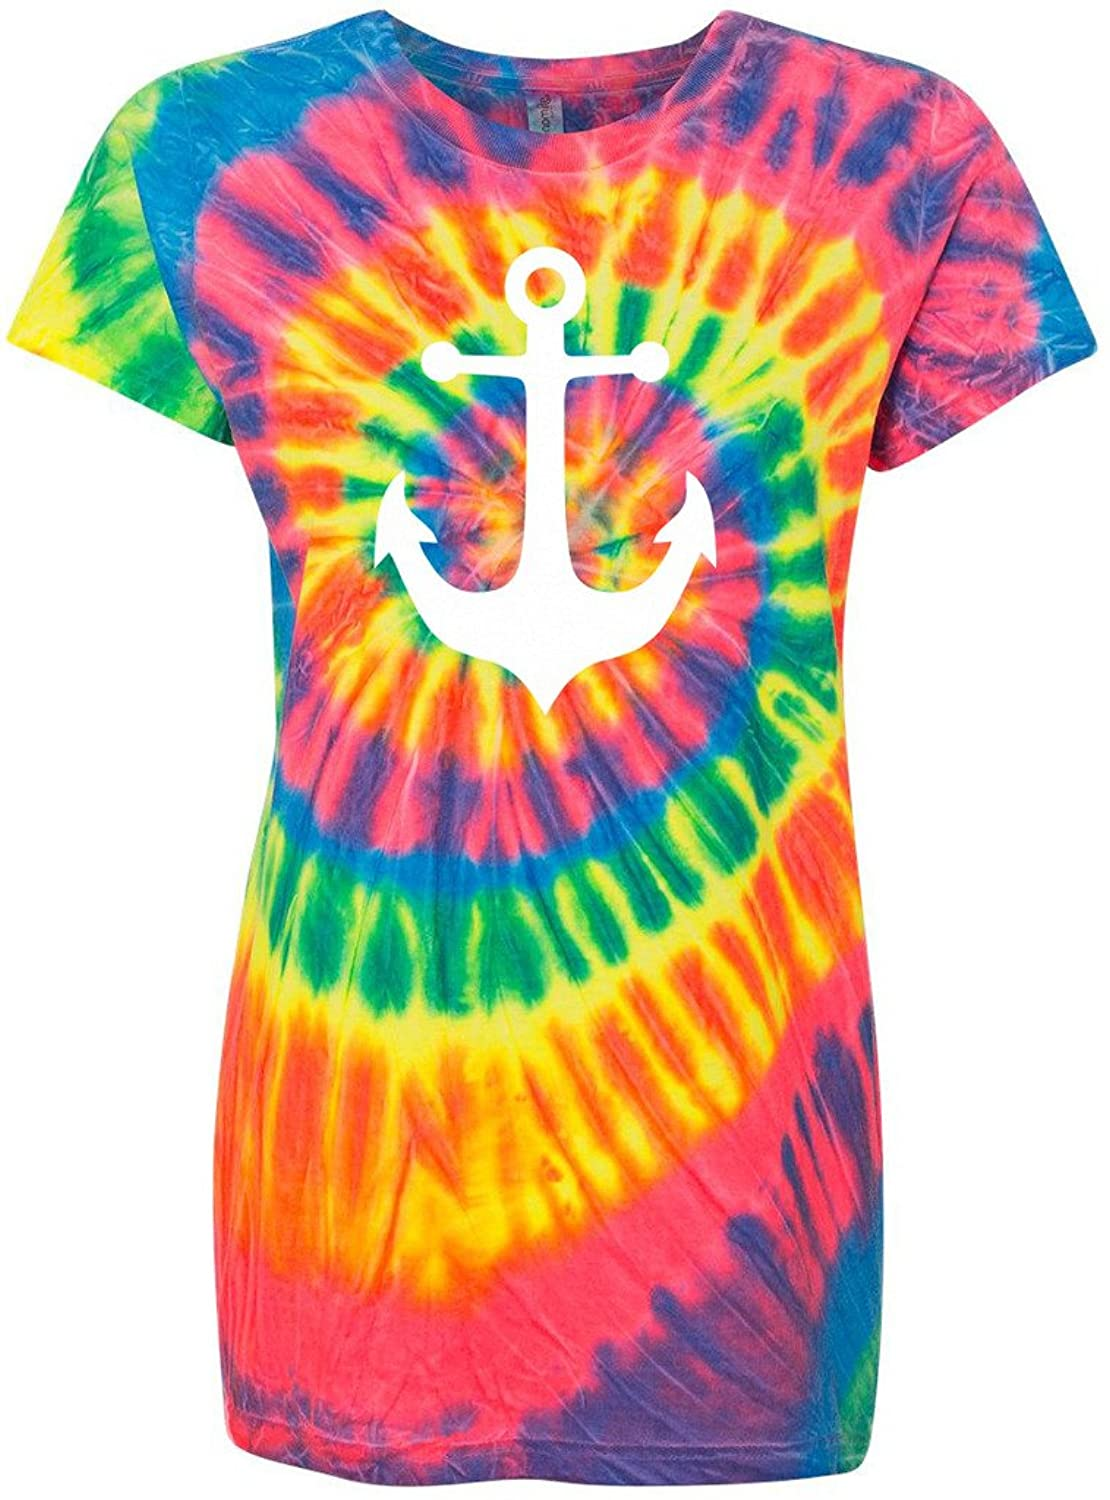 Yoga Clothing For You Ladies Anchor Tie Dye Tee Shirt